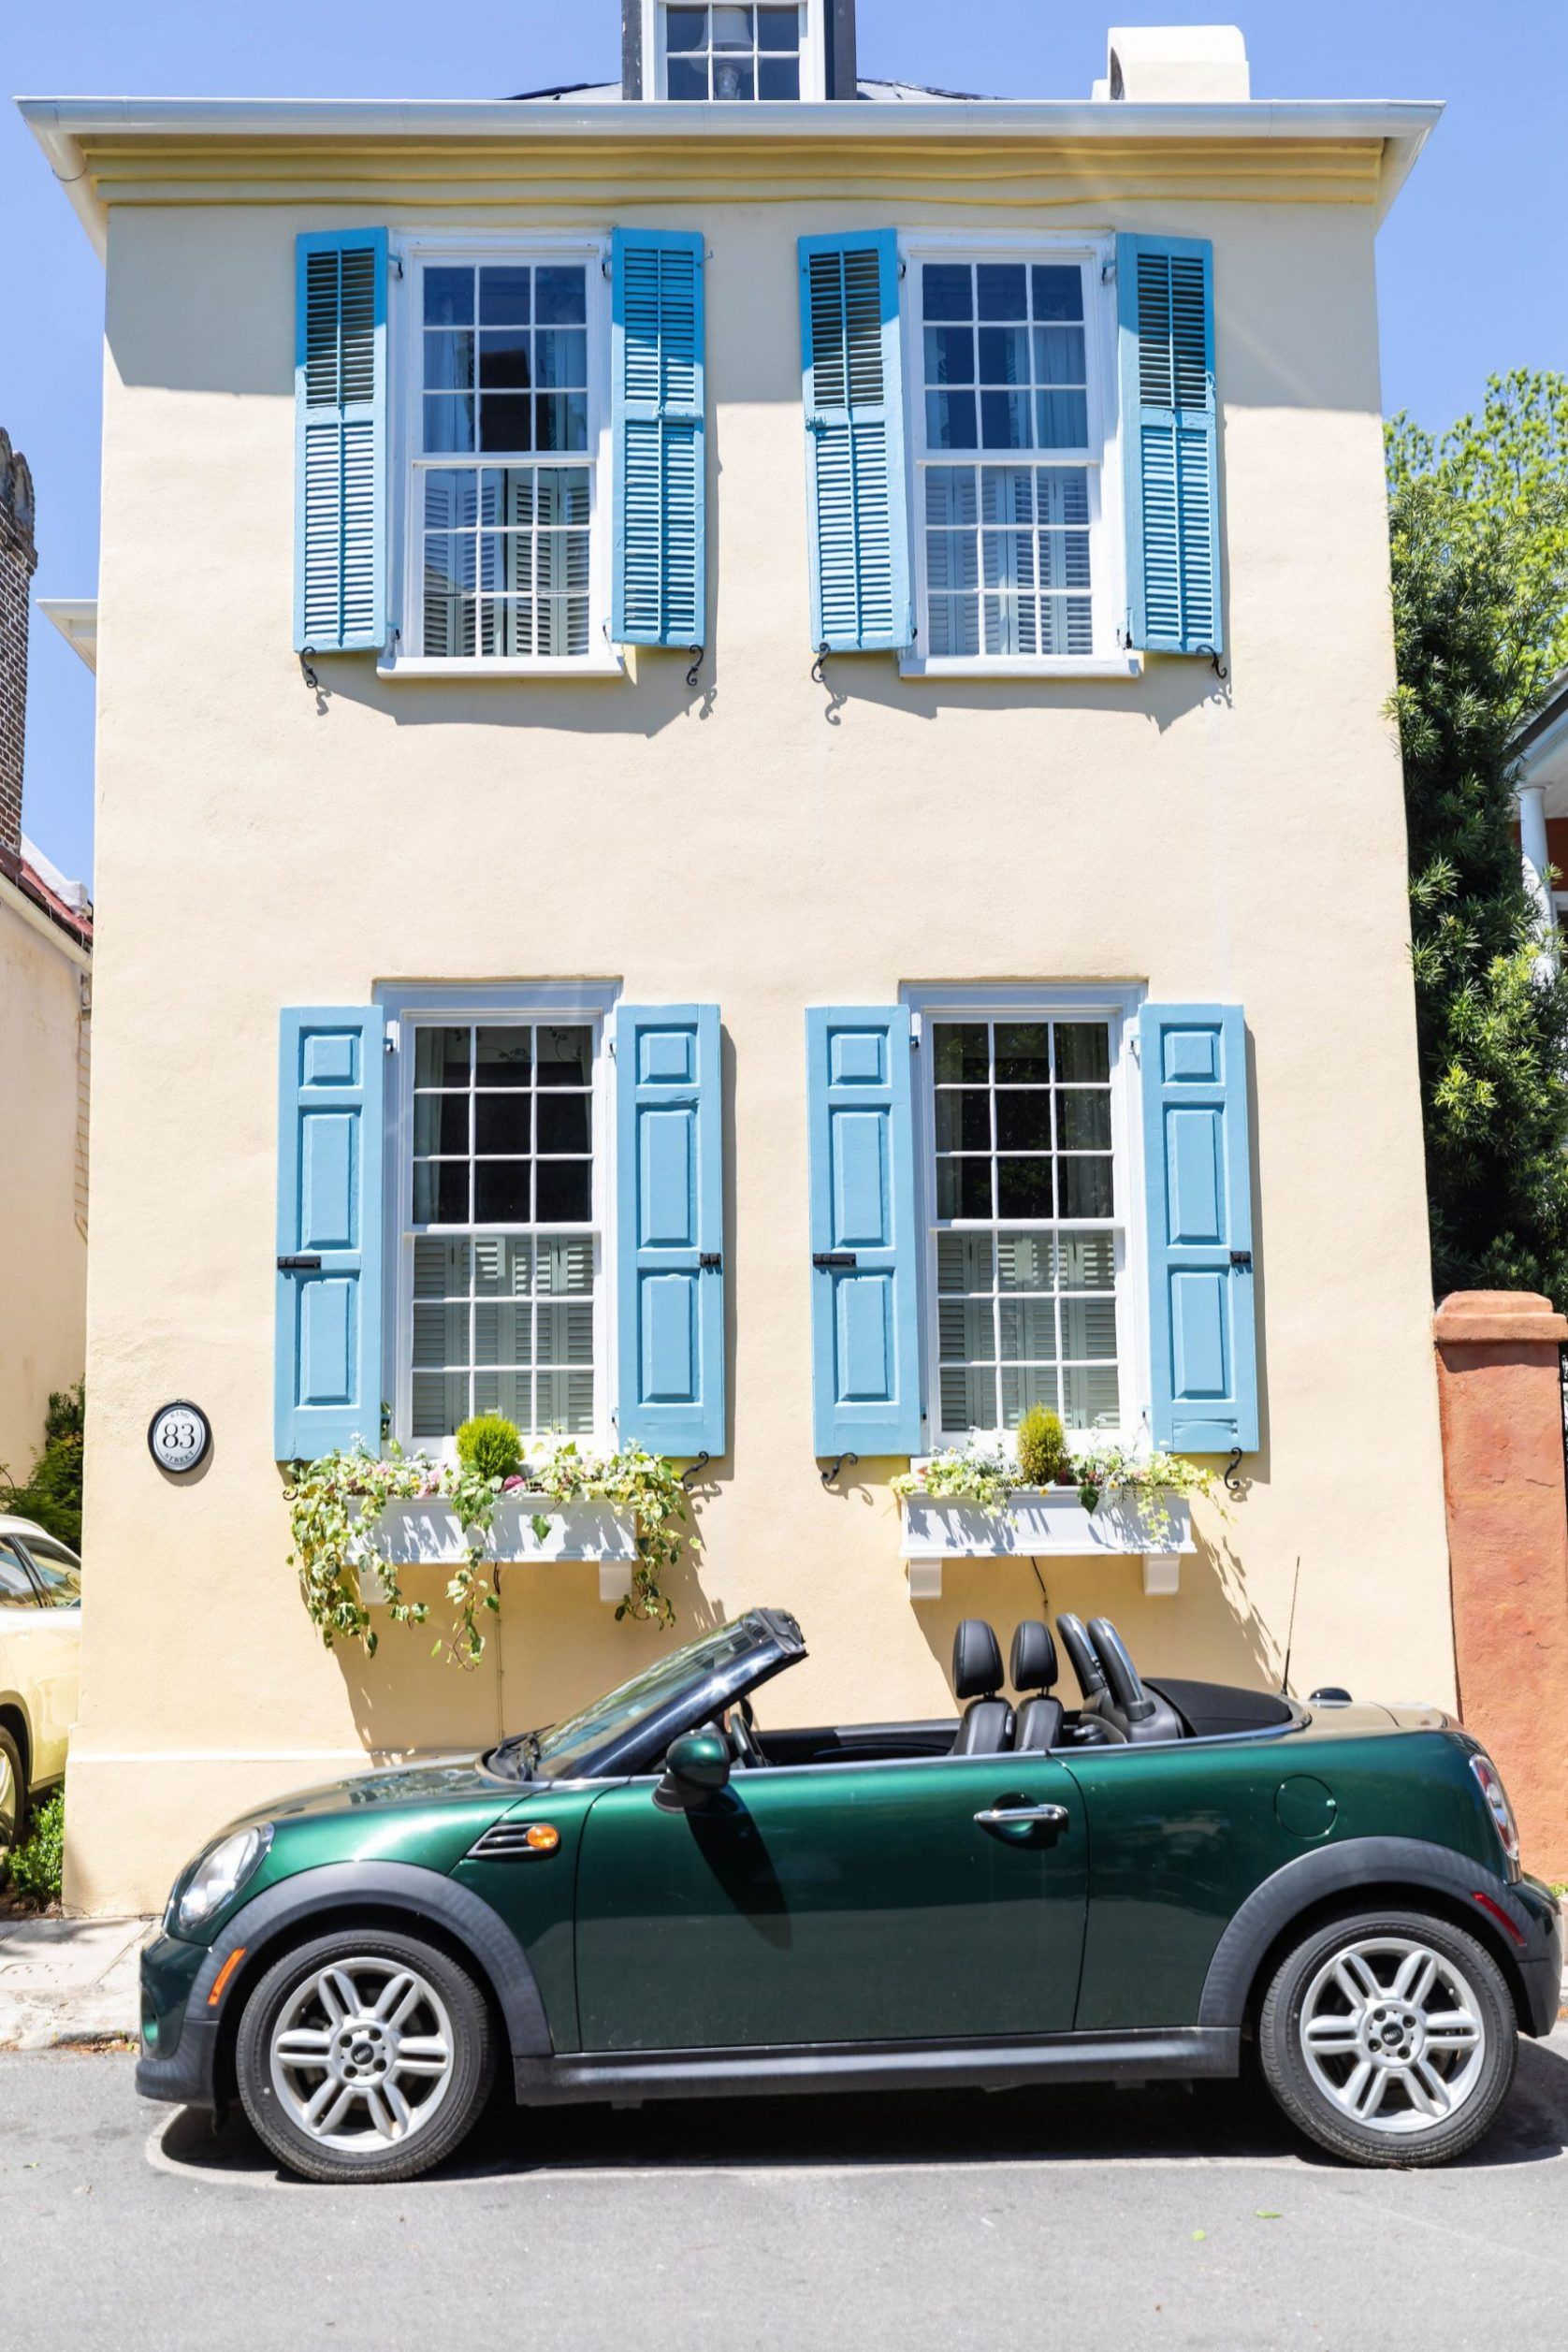 Architecture of The Holy City Charleston Luxury Travel Guide by Photographer Annie Fairfax South Carolina Vacation Ideas and Honeymoon Inspiration